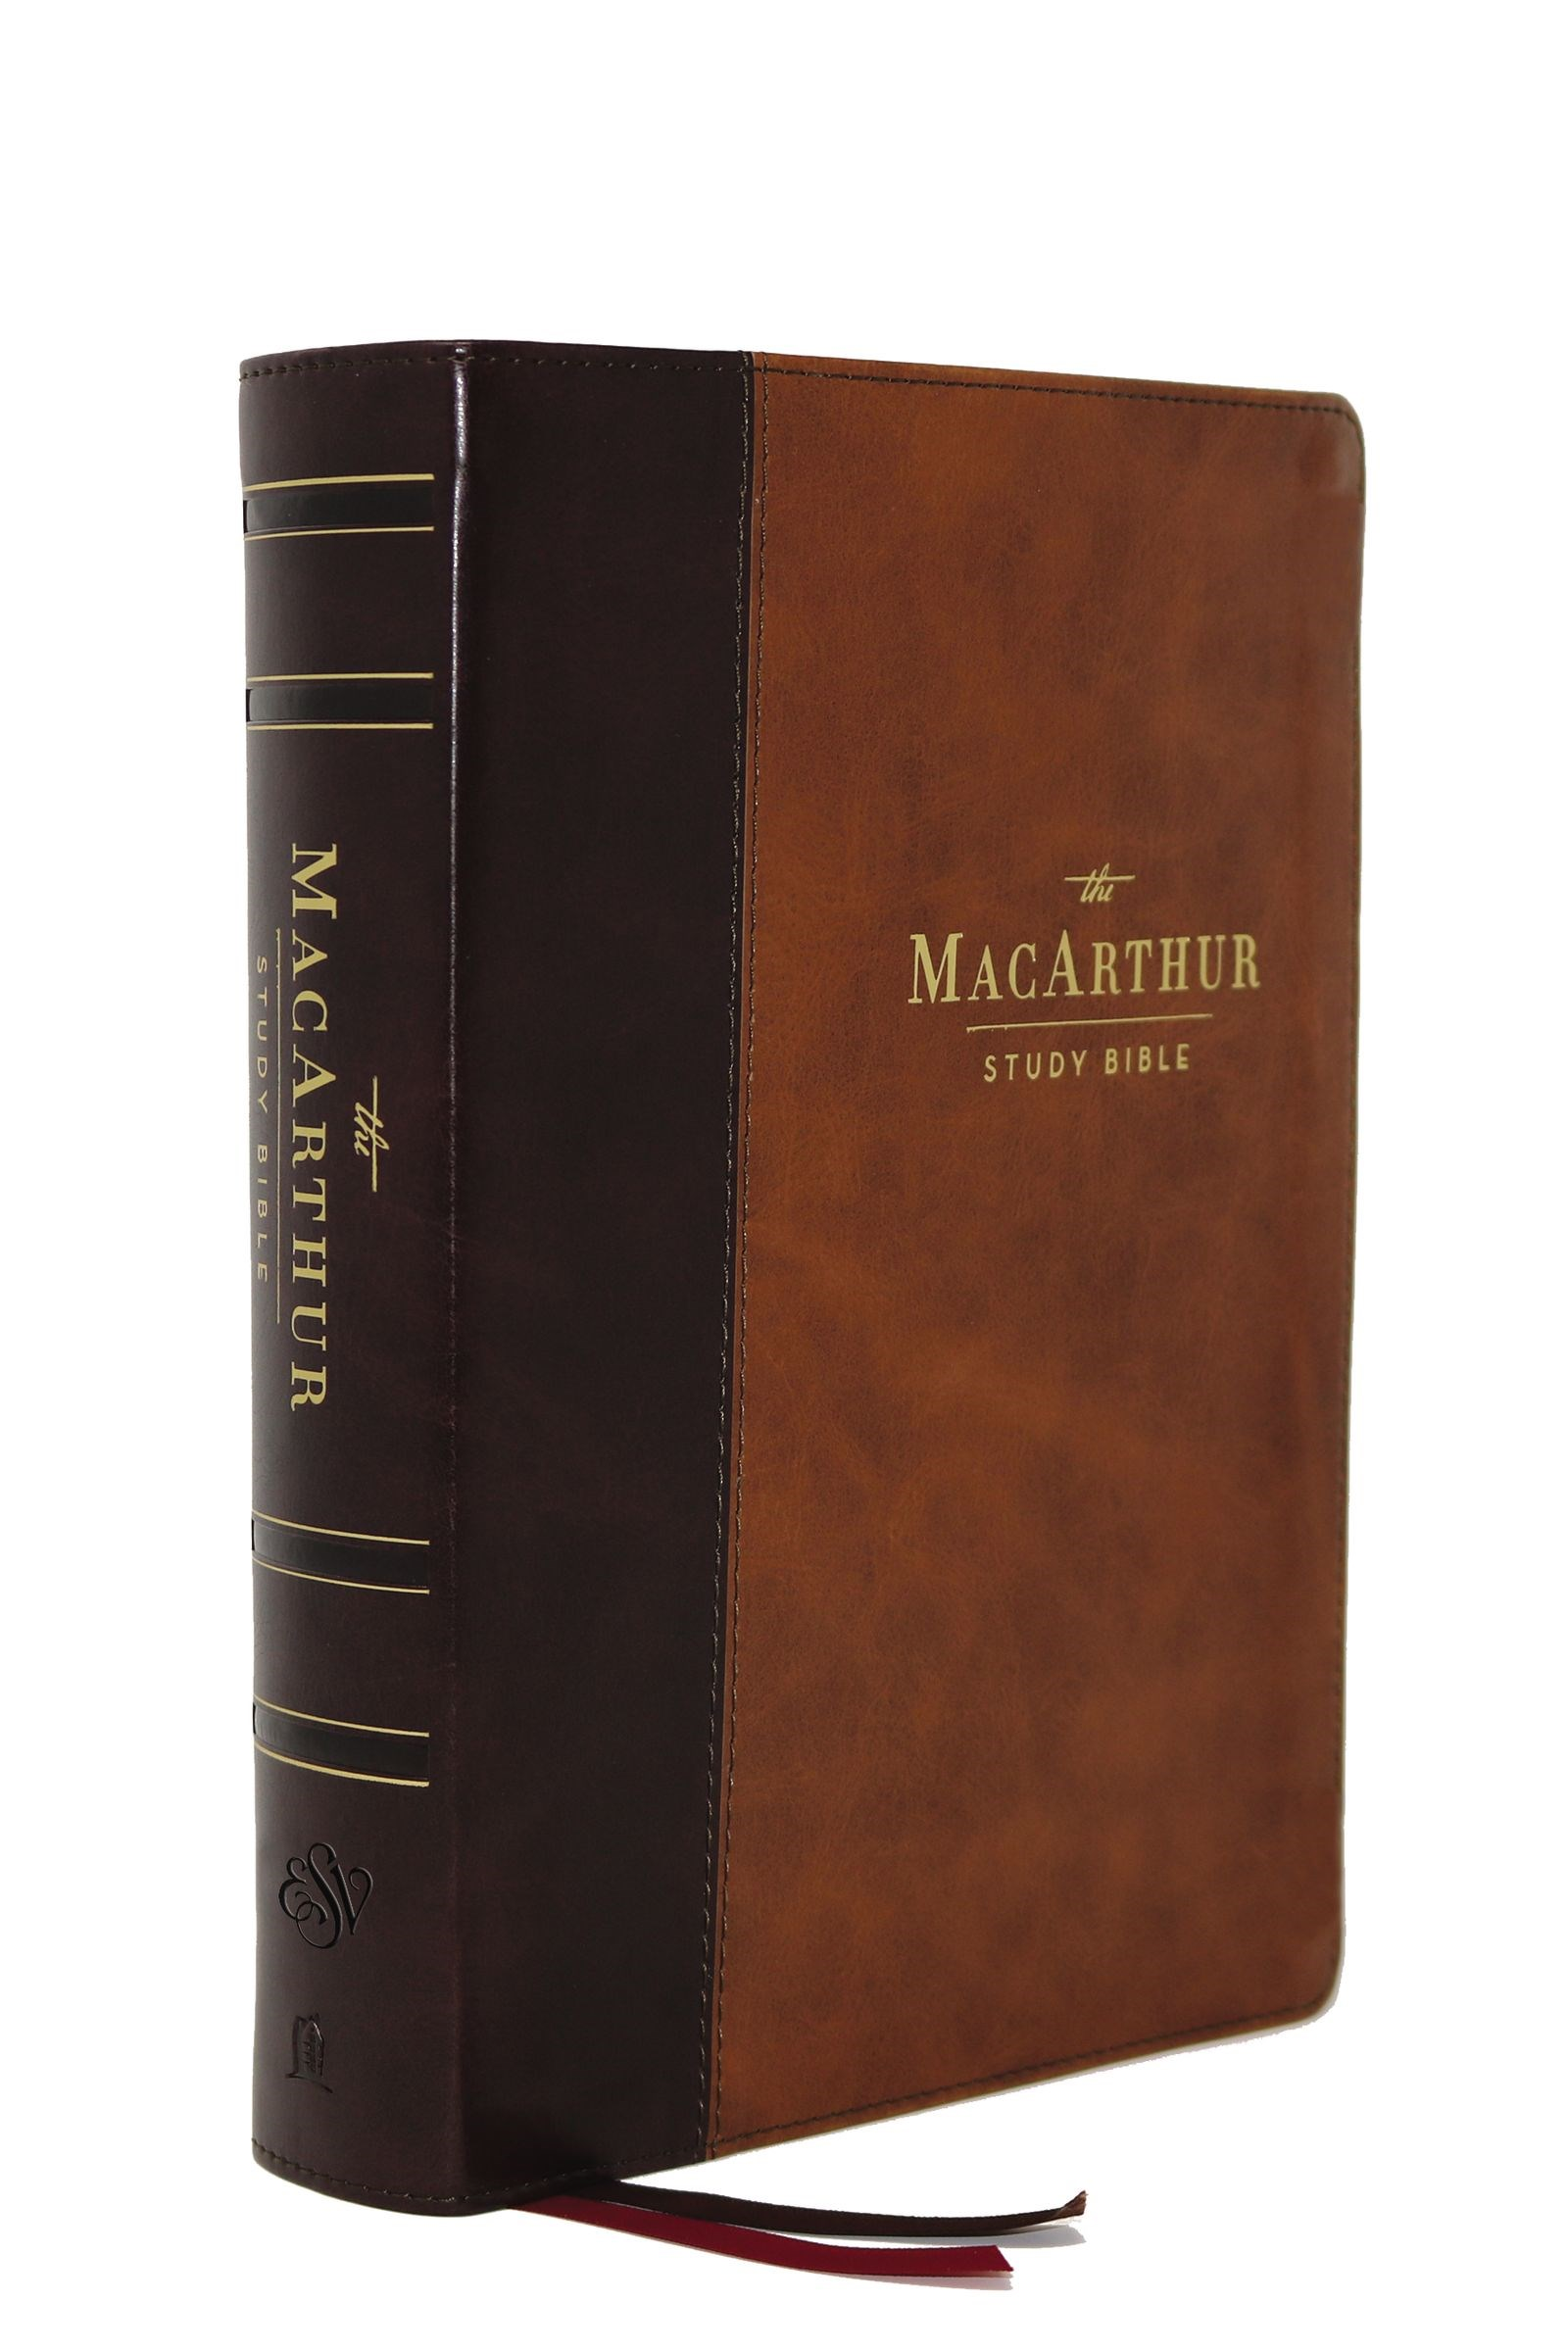 ESV MacArthur Study Bible (2nd Edition)-Brown Leathersoft